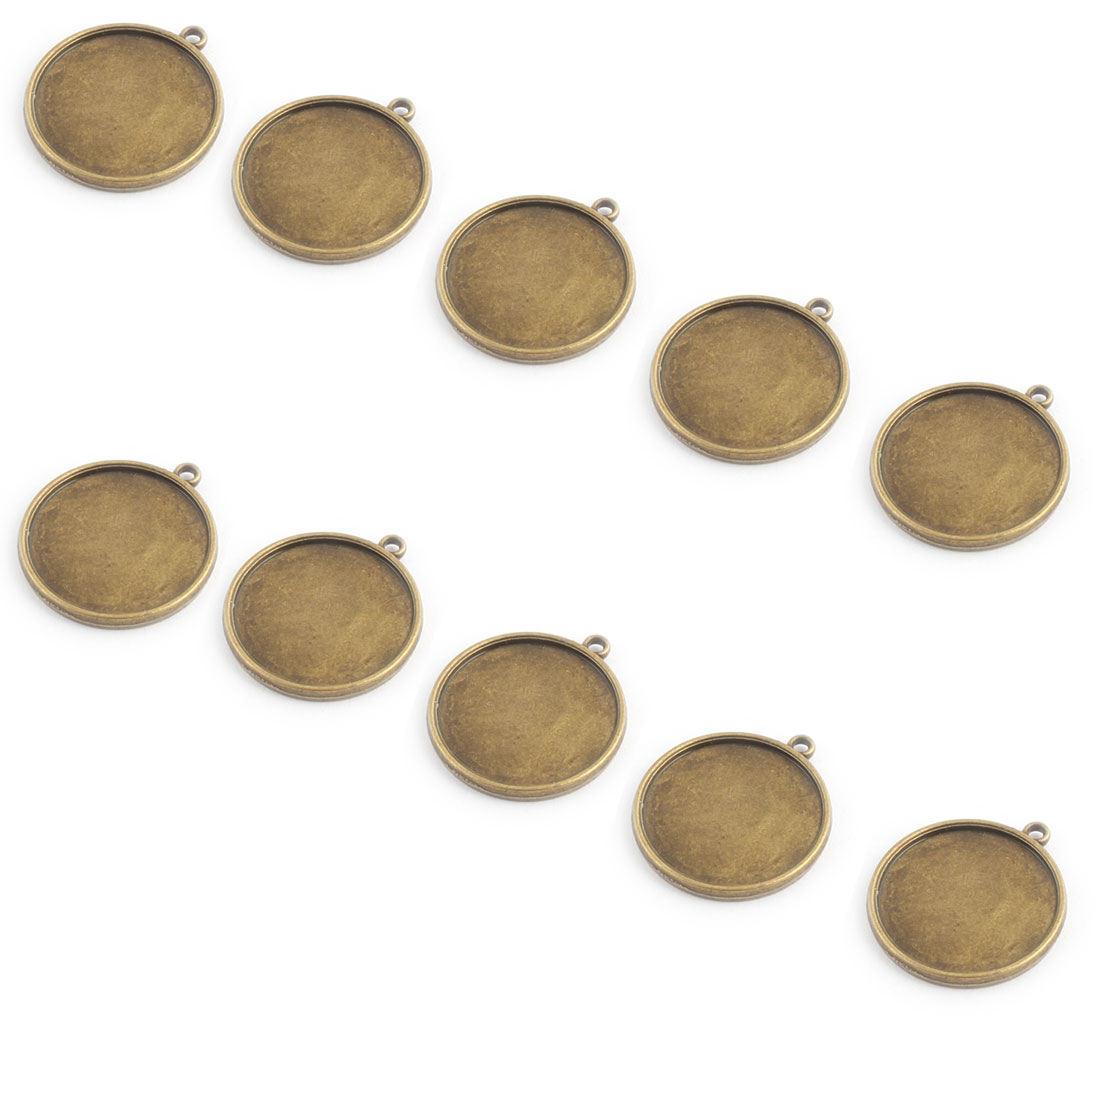 Household Copper Alloy DIY Double Sided Round Pendant Trays Bronze Tone 25mm Inner Dia 10 Pcs